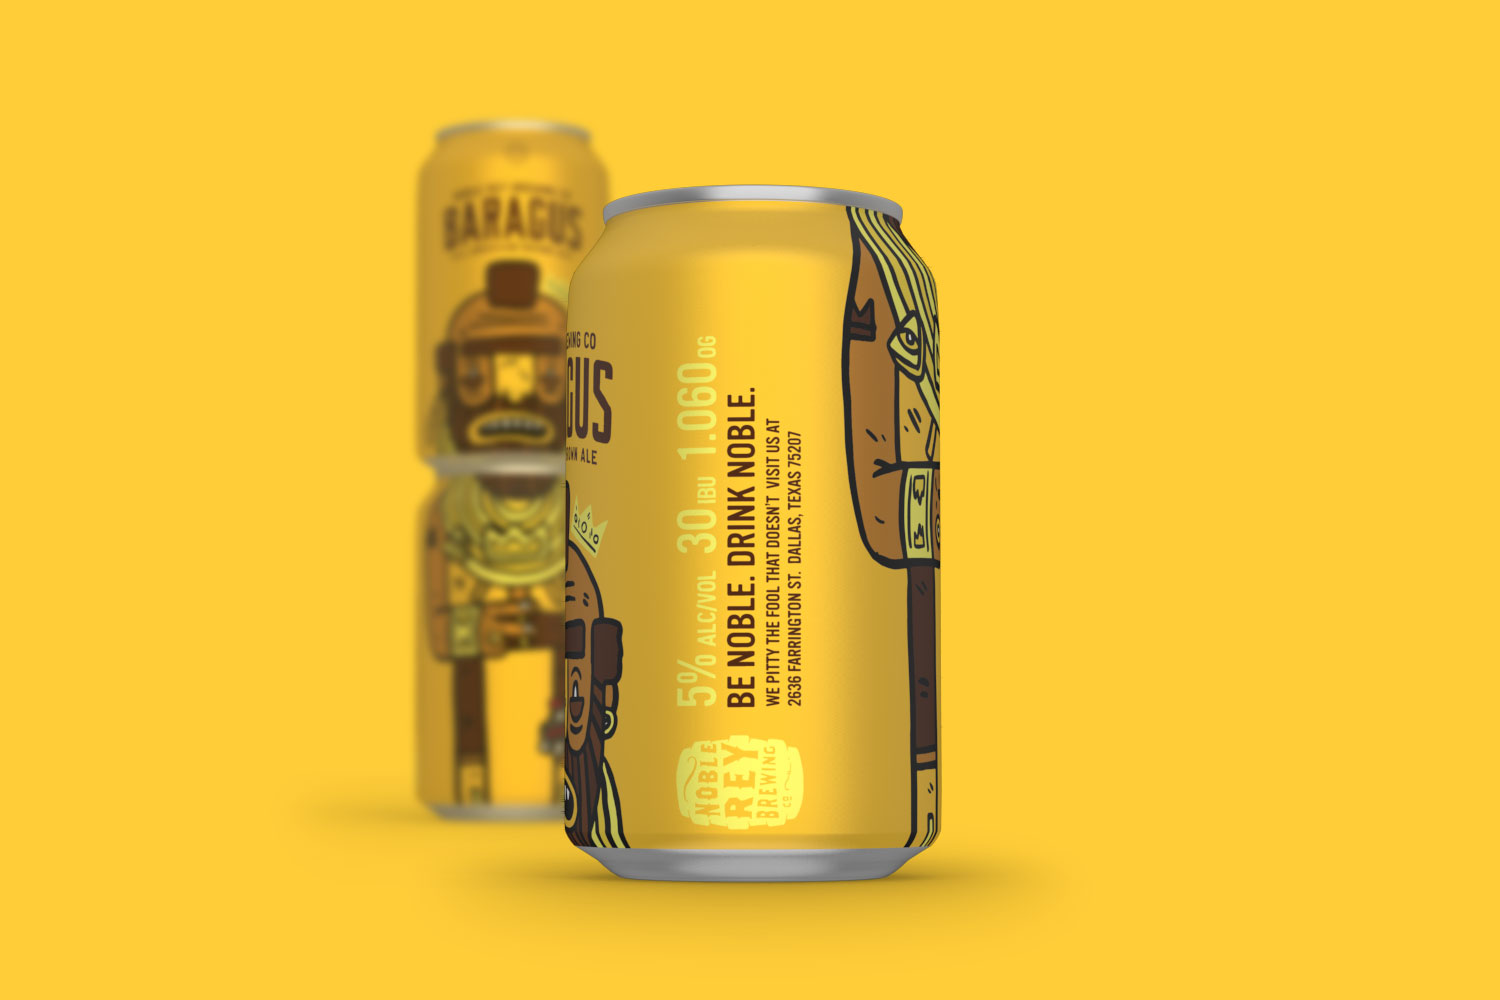 Noble Rey Brewing Co. (bière) | Design : Magnificent Beard, Etats-Unis (juillet 2016)